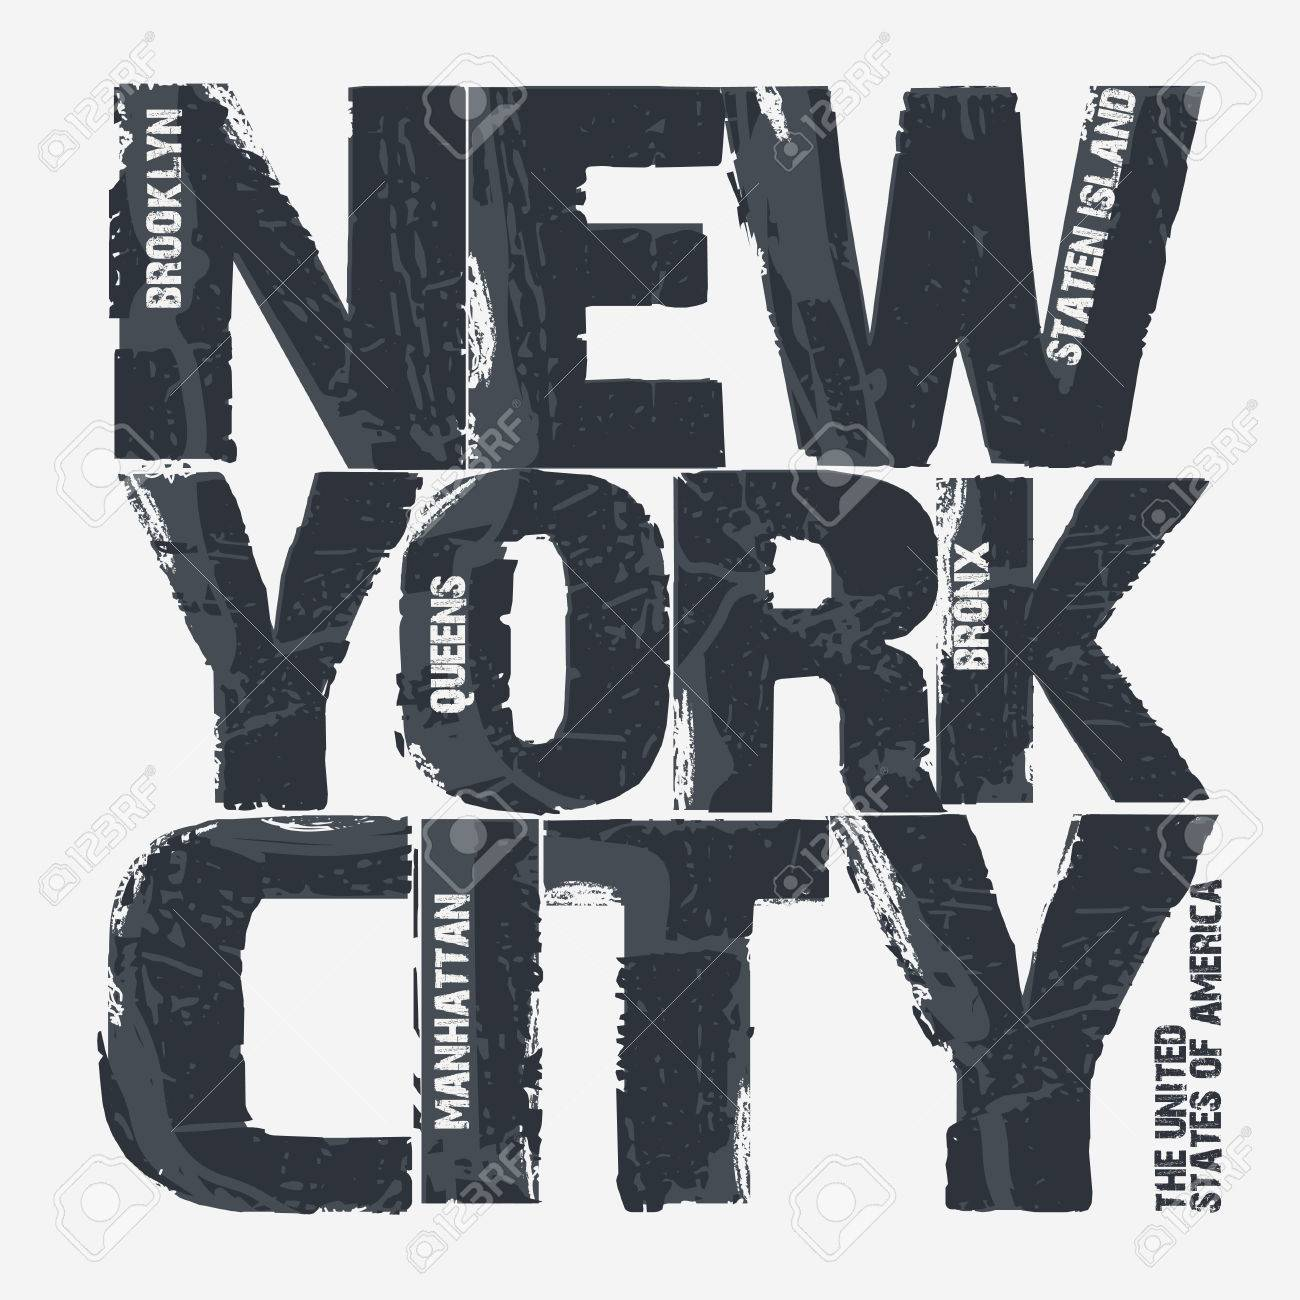 T shirt design queens ny - T Shirt Design Queens Ny New York City Typography Graphics Brooklyn T Shirt Design Vector